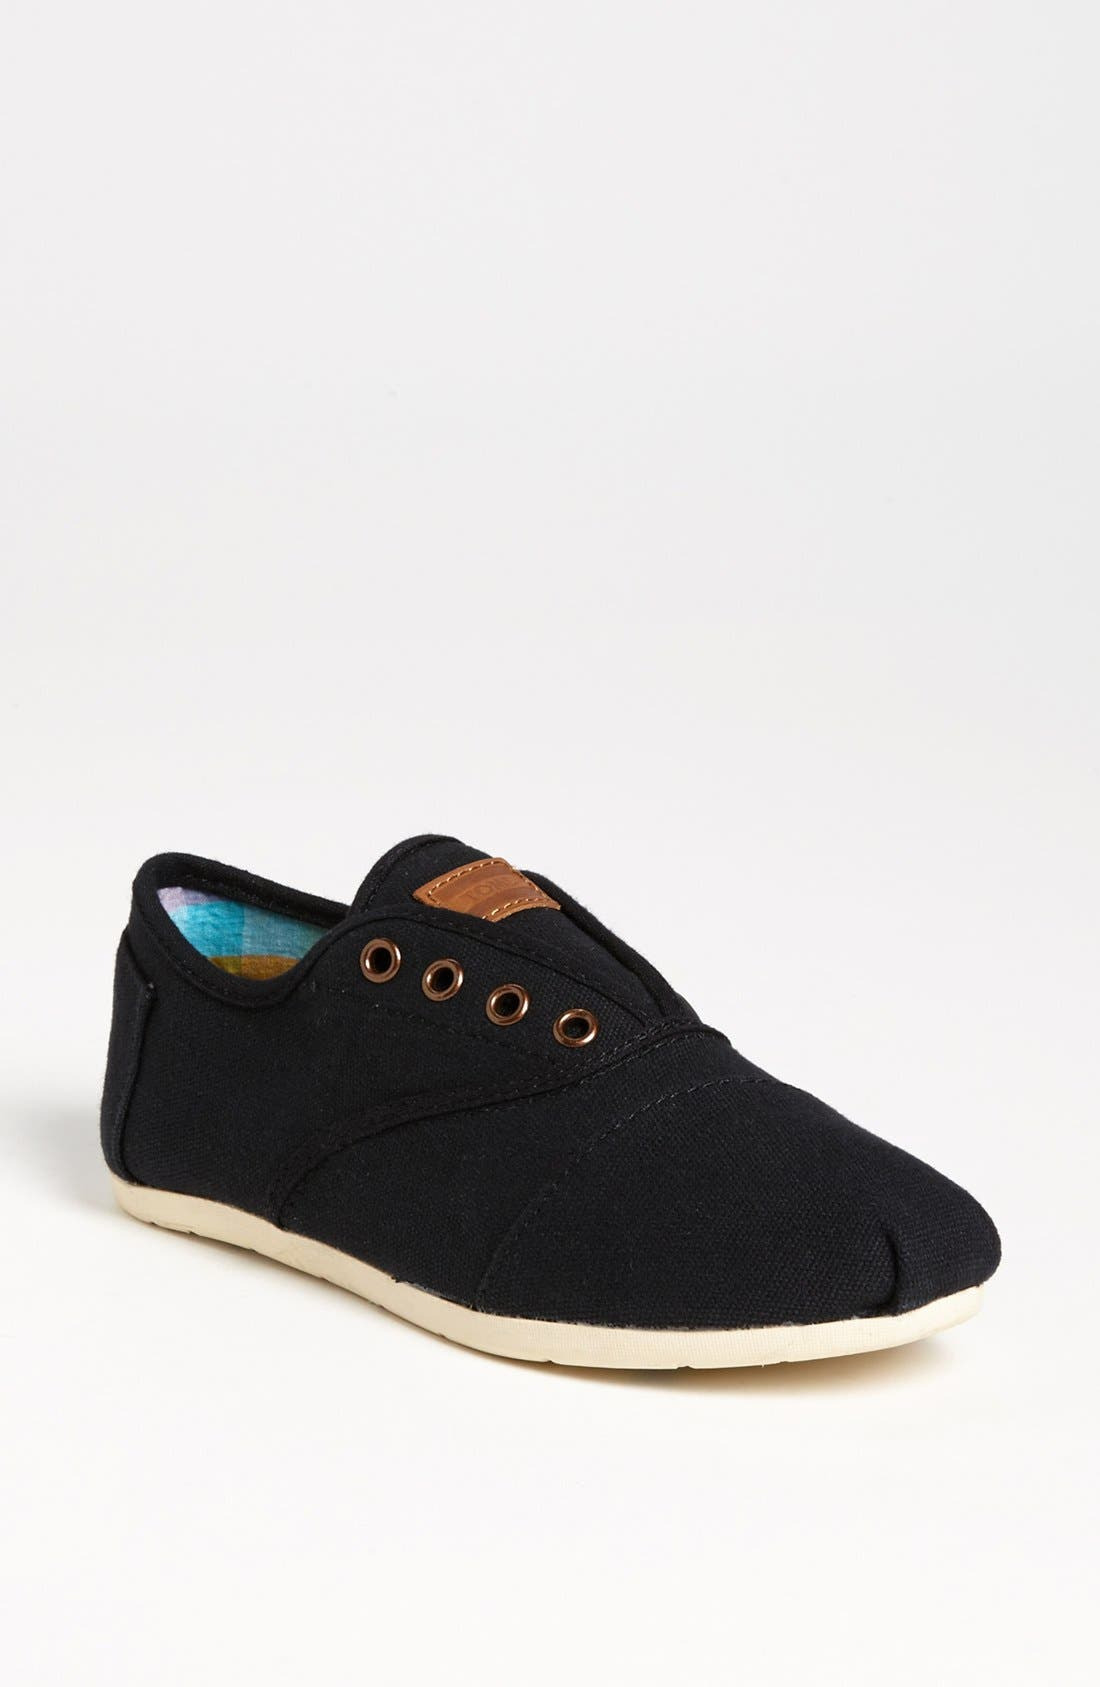 Alternate Image 1 Selected - TOMS 'Cordones' Slip-On (Women)